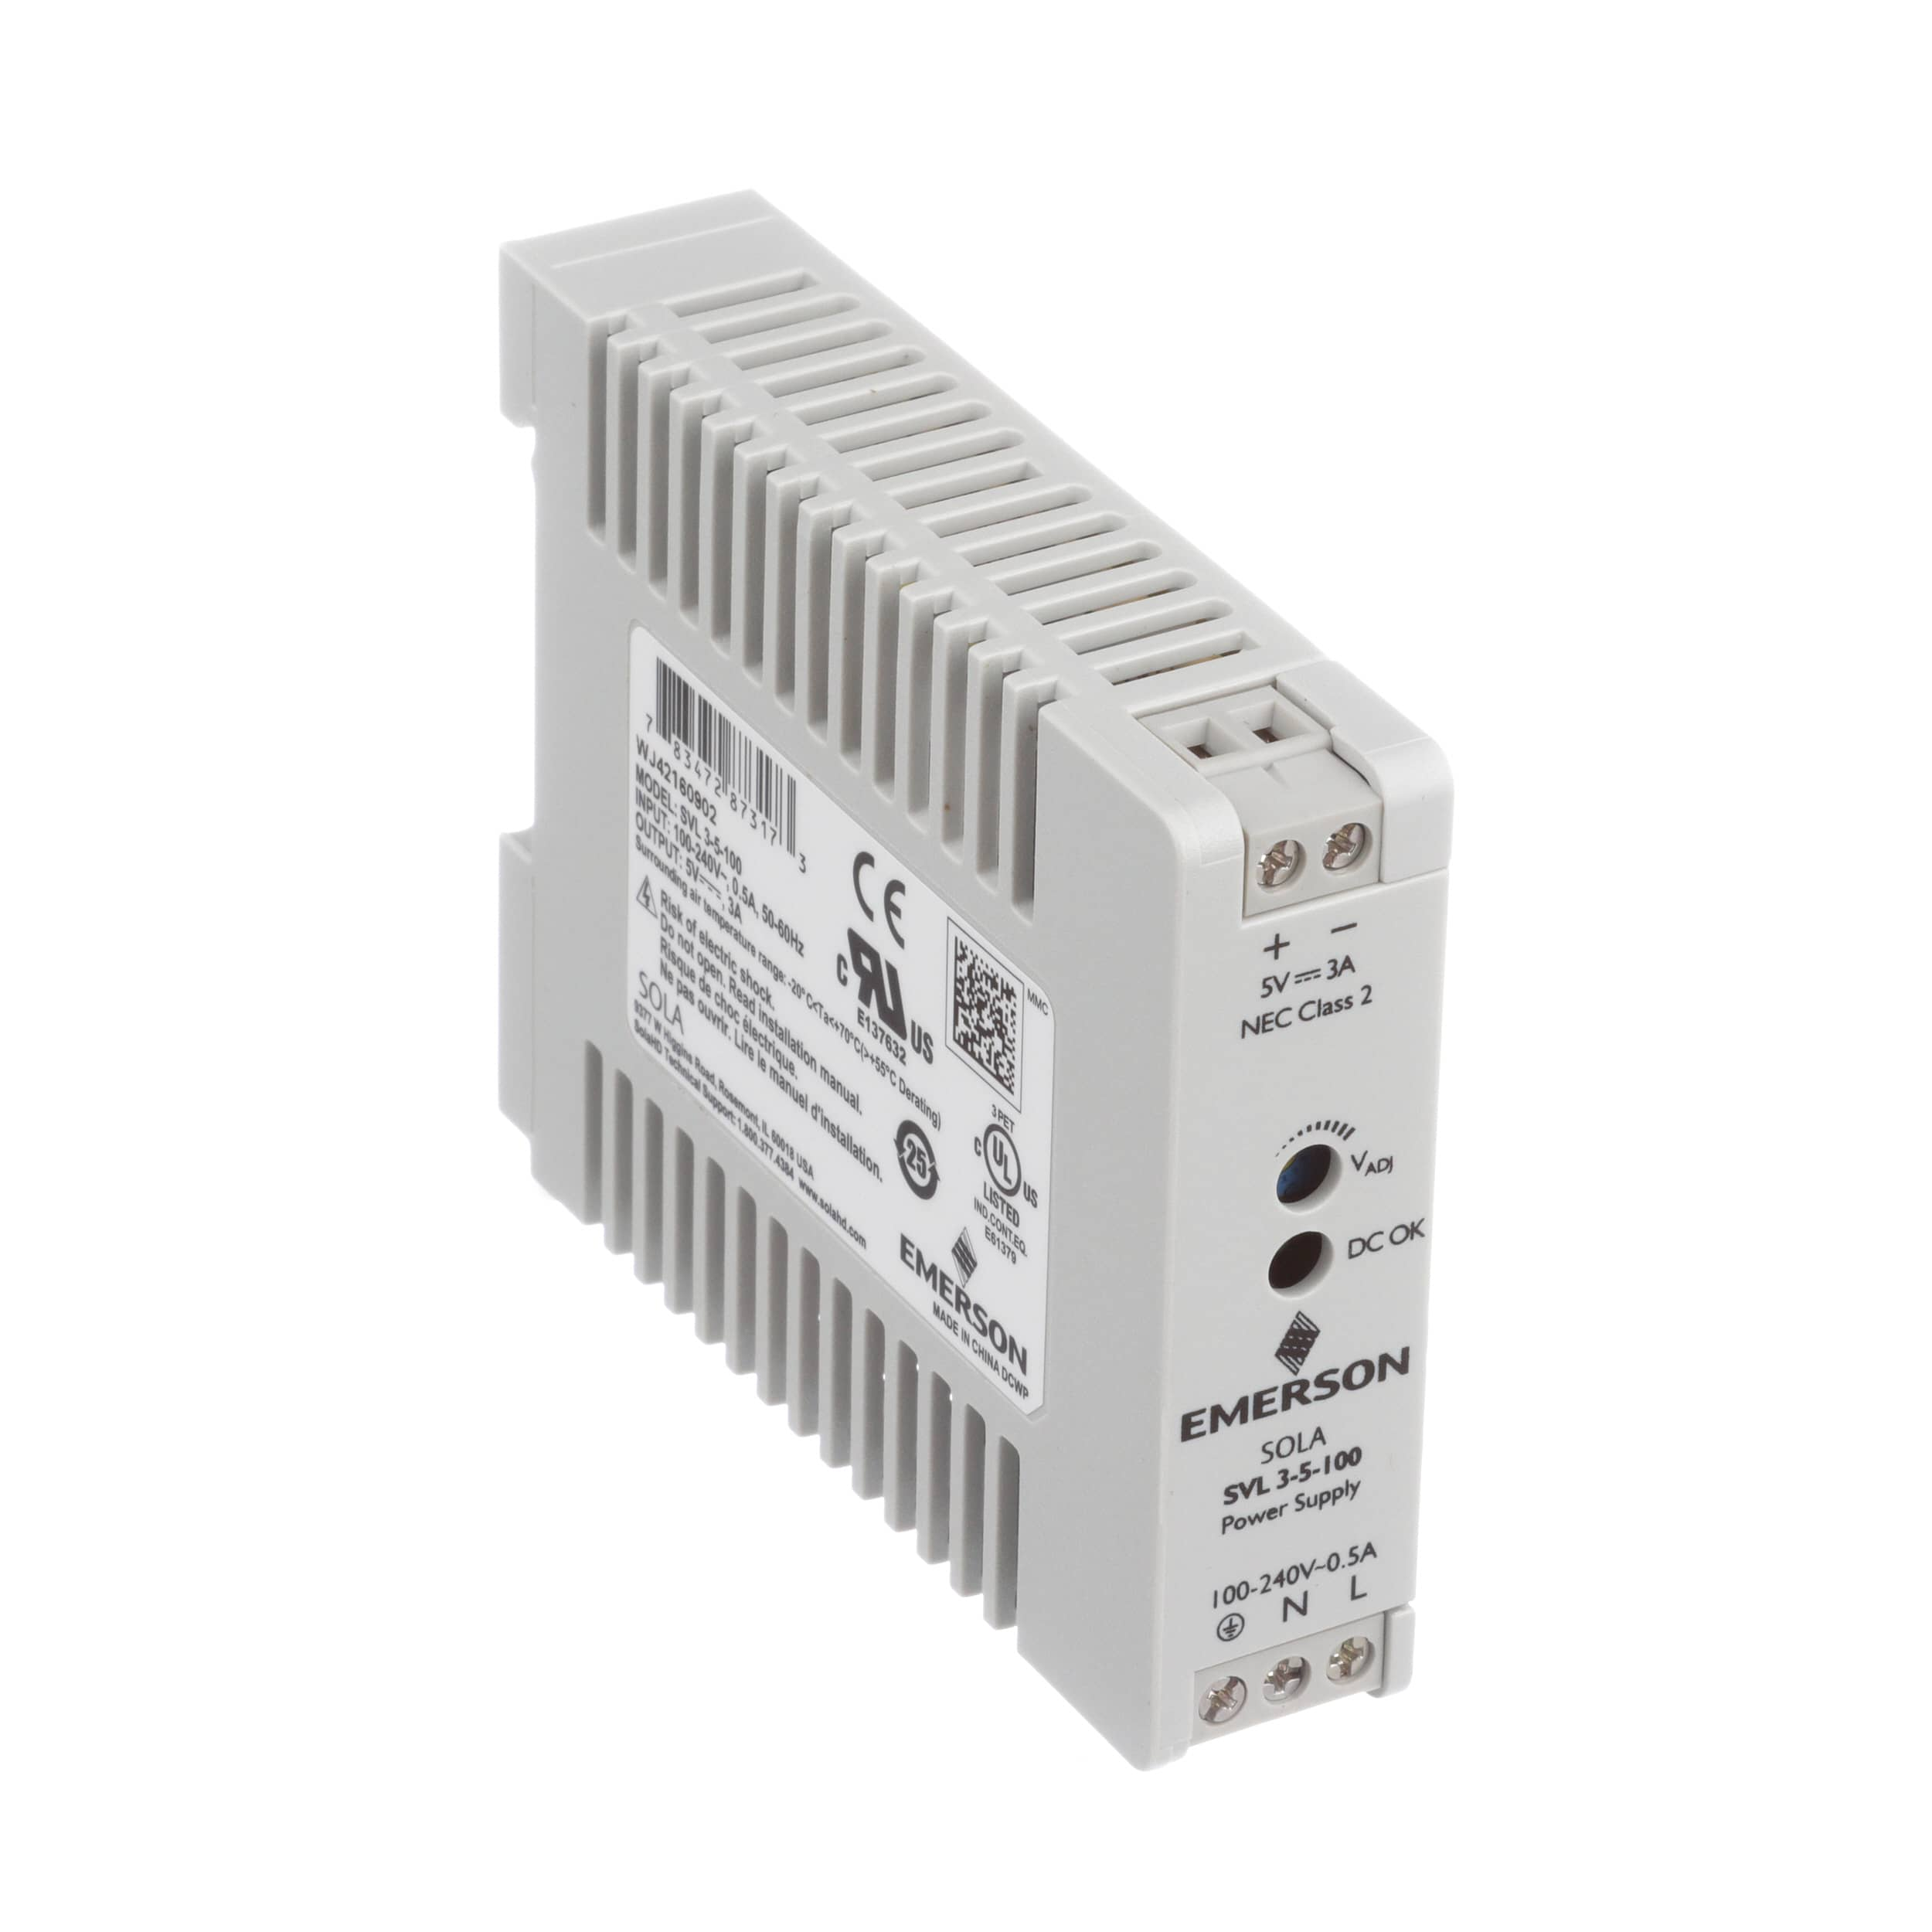 Power Supplies Discrete Semiconductor Devices And Circuits Solahd Svl 3 5 100 Supply Ac Dc Din Rail Single Output 5v 3a 85 264v In Series Allied Electronics Automation